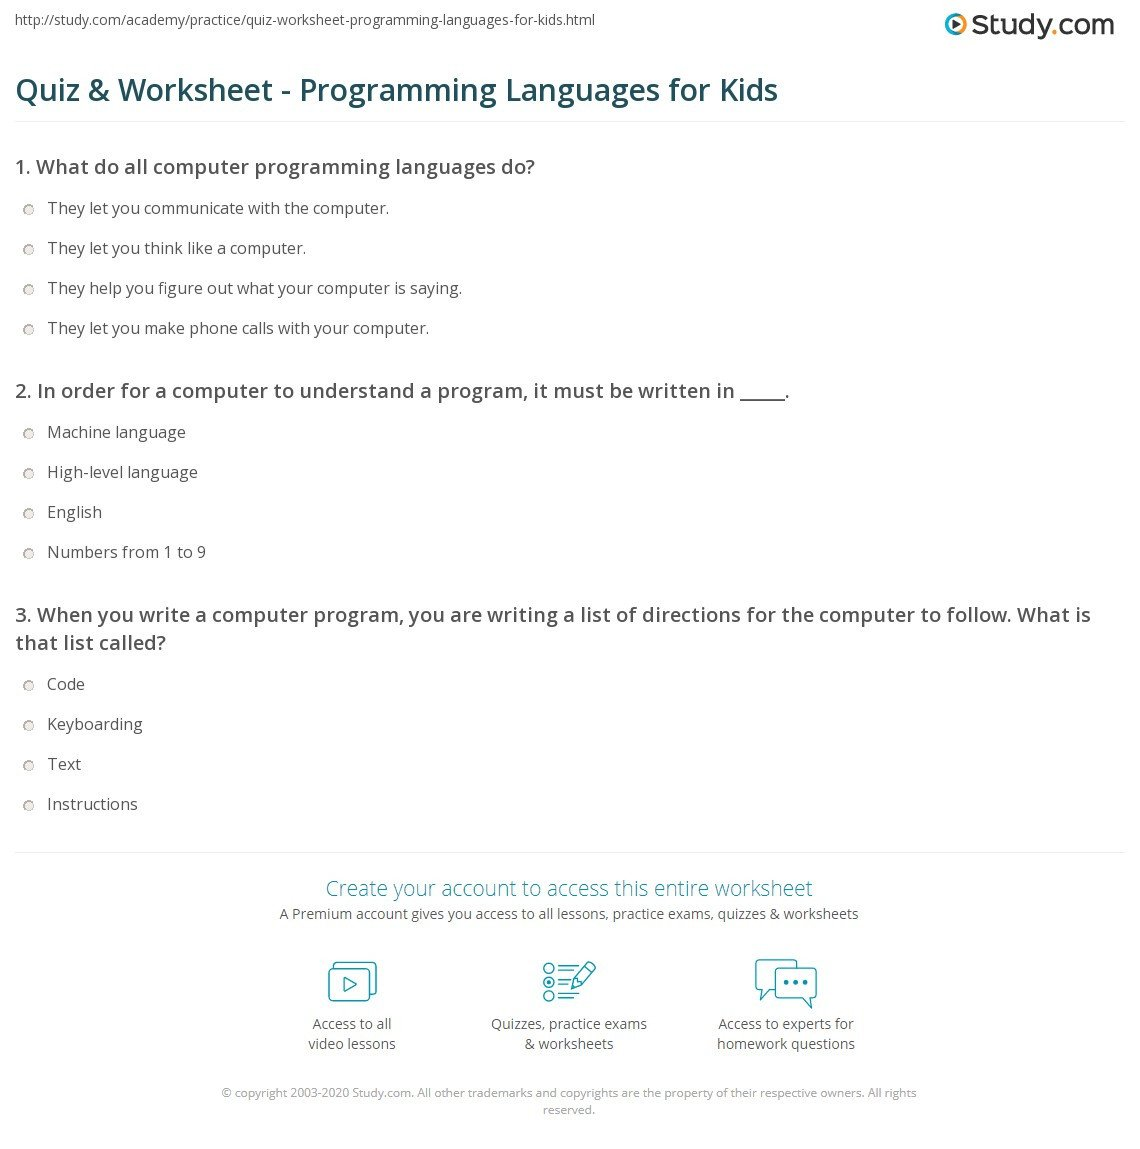 quiz worksheet programming languages for kids